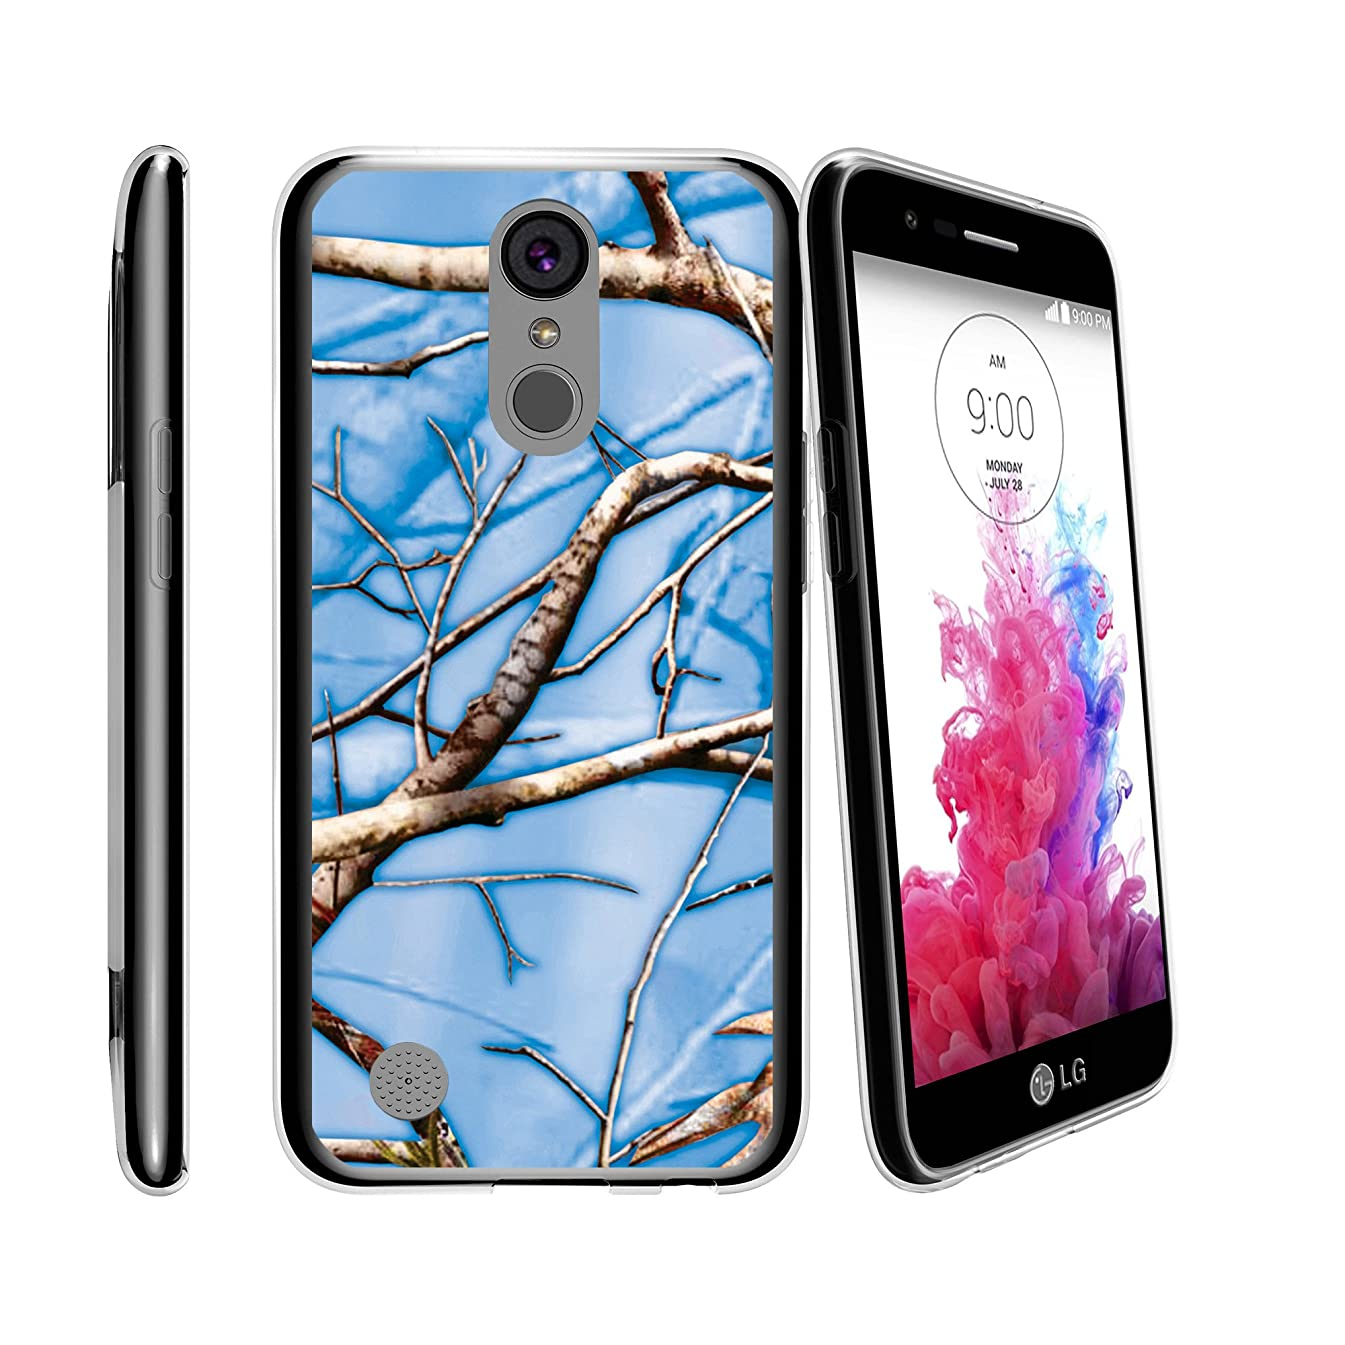 Silicone Case by MINITURTLE Compatible with LG K20   LG K20V   LG K20 Plus   LG Grace   LG Harmony (LV5) Flexible TPU Case w/Raised Silicone Edges - Blue Branch Camo